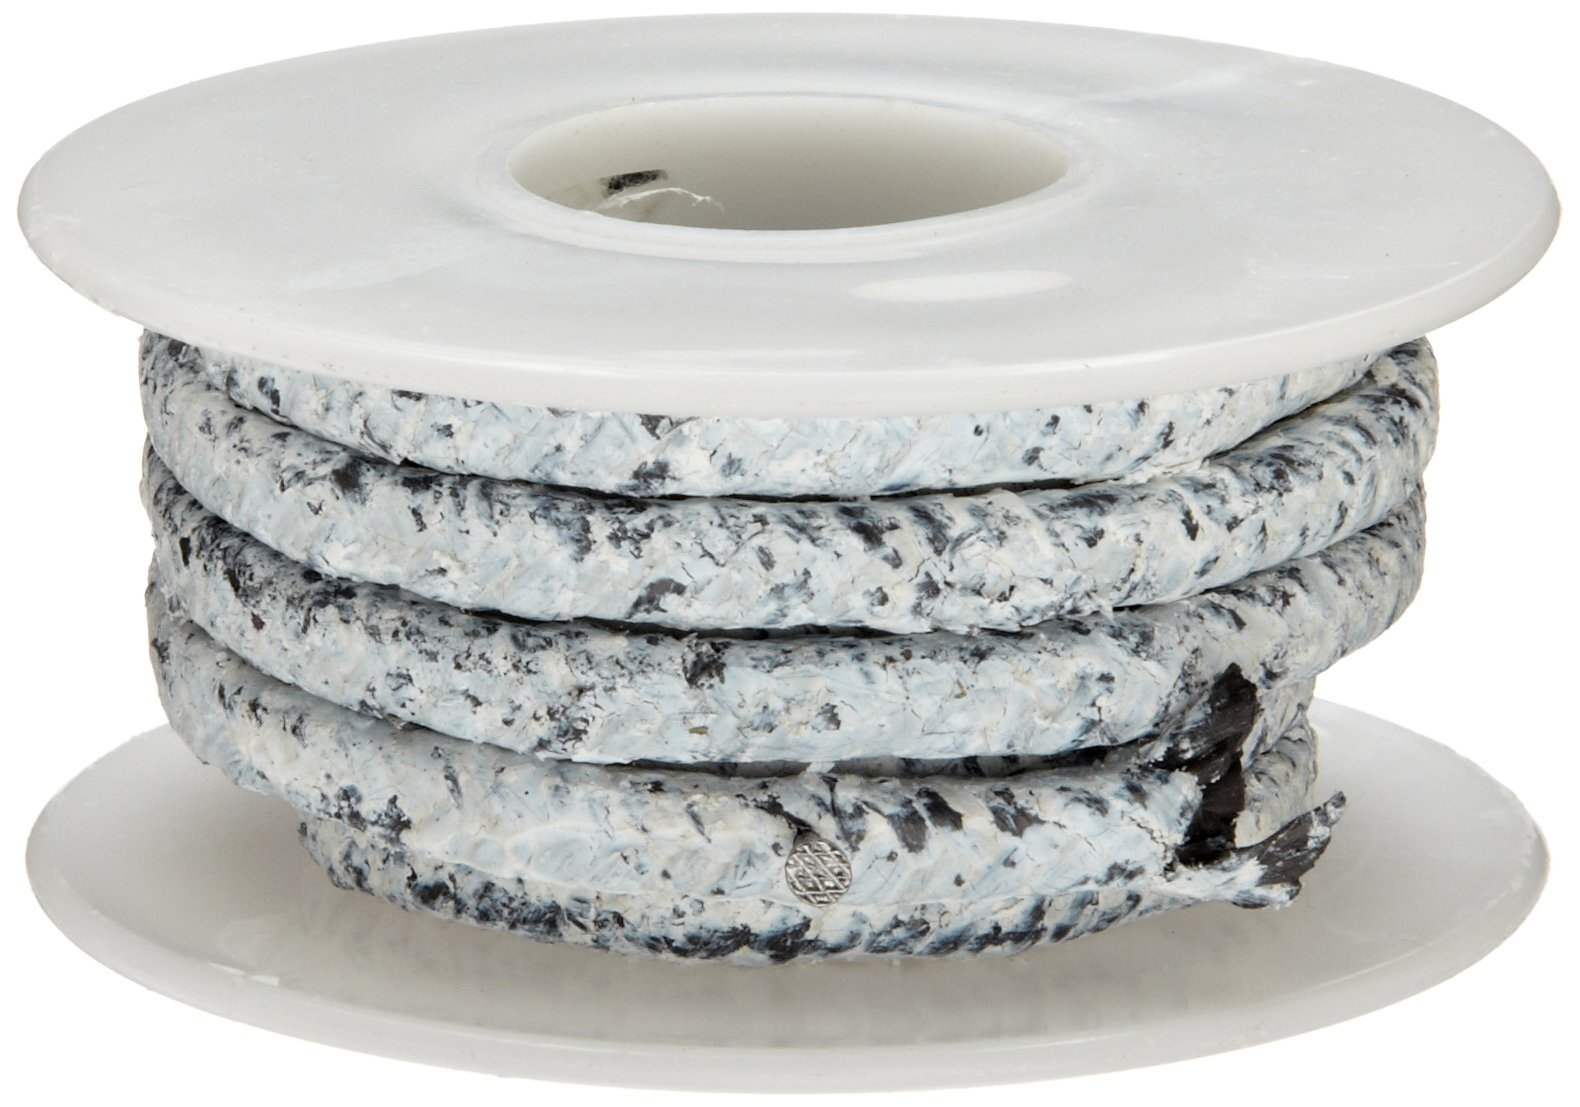 Palmetto 1578 Series Carbon with PTFE Coating Compression Packing Seal, Black with White Coating, 1/2'' Square, 10' Length